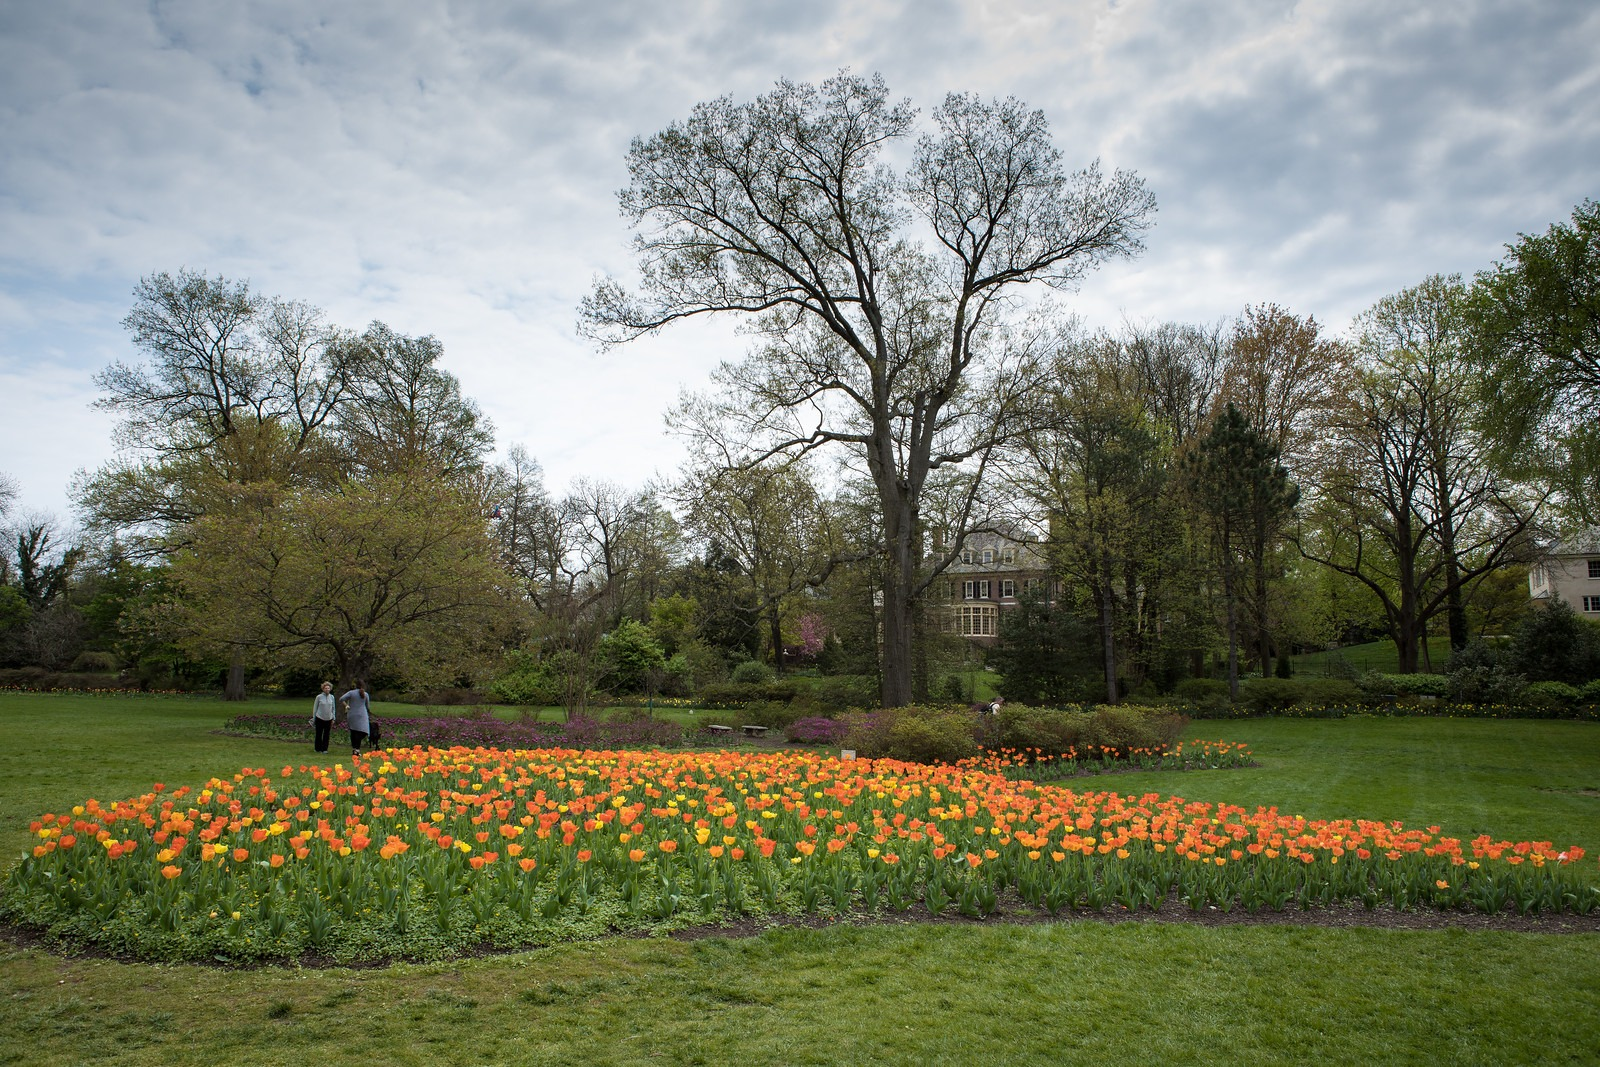 Orange Flowers in Sherwood Gardens